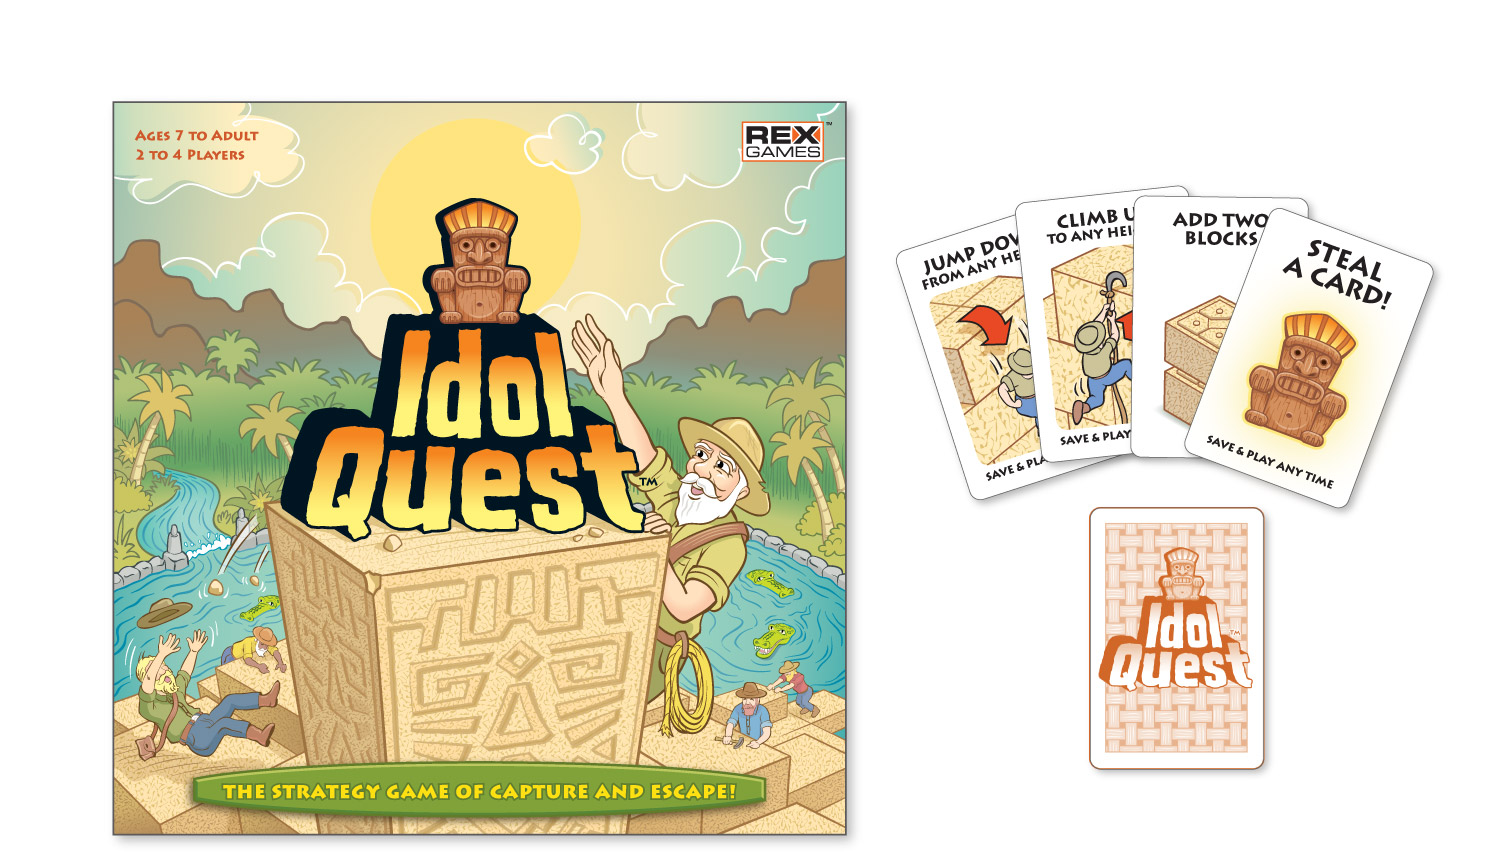 """Idol Quest"" game box, card deck and game board for Rex Games, Inc."